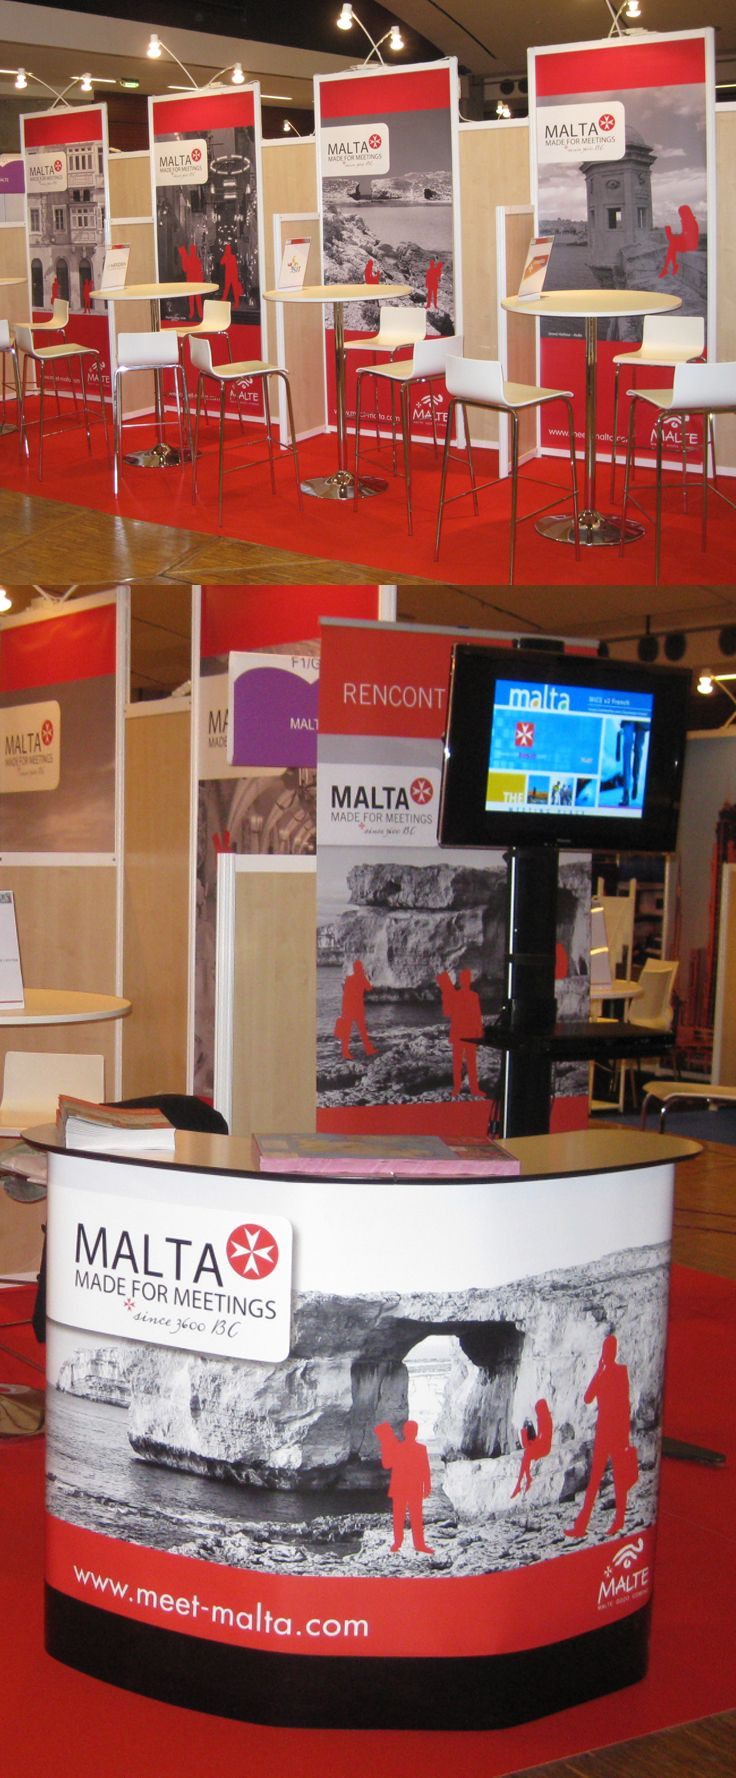 Exhibition graphics for Malta Meetings